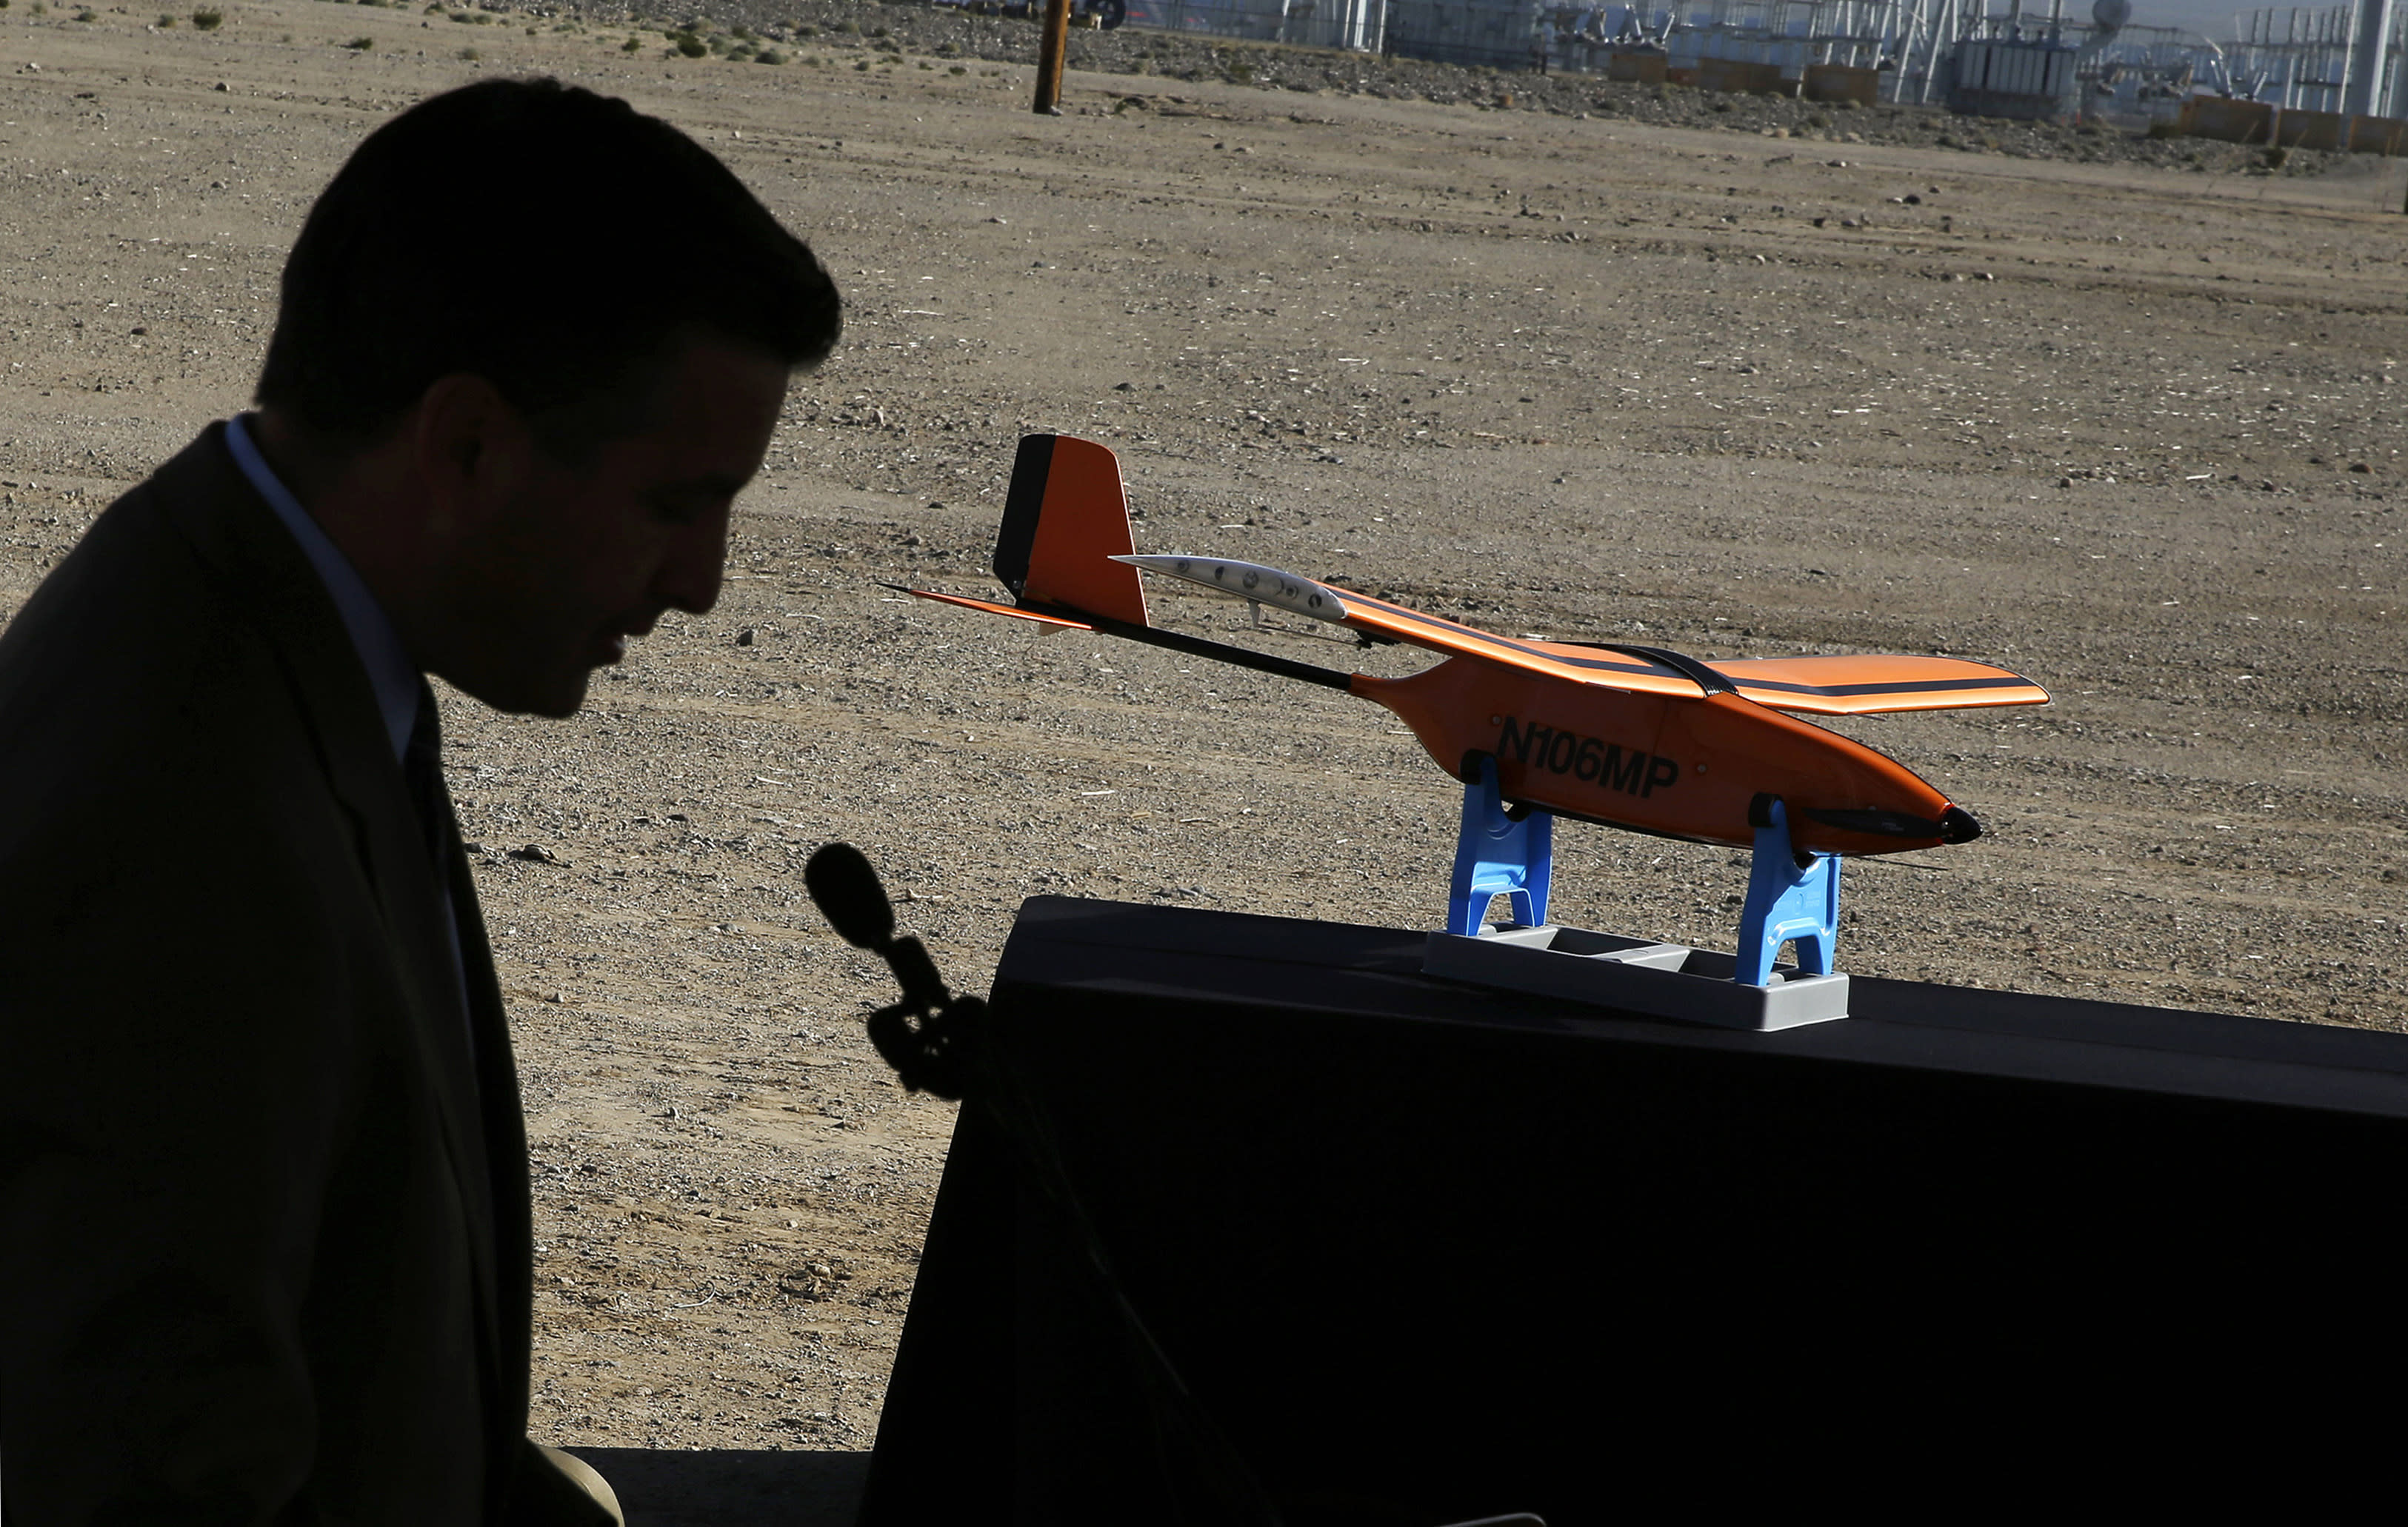 1st drone in Nevada test program crashes in demo